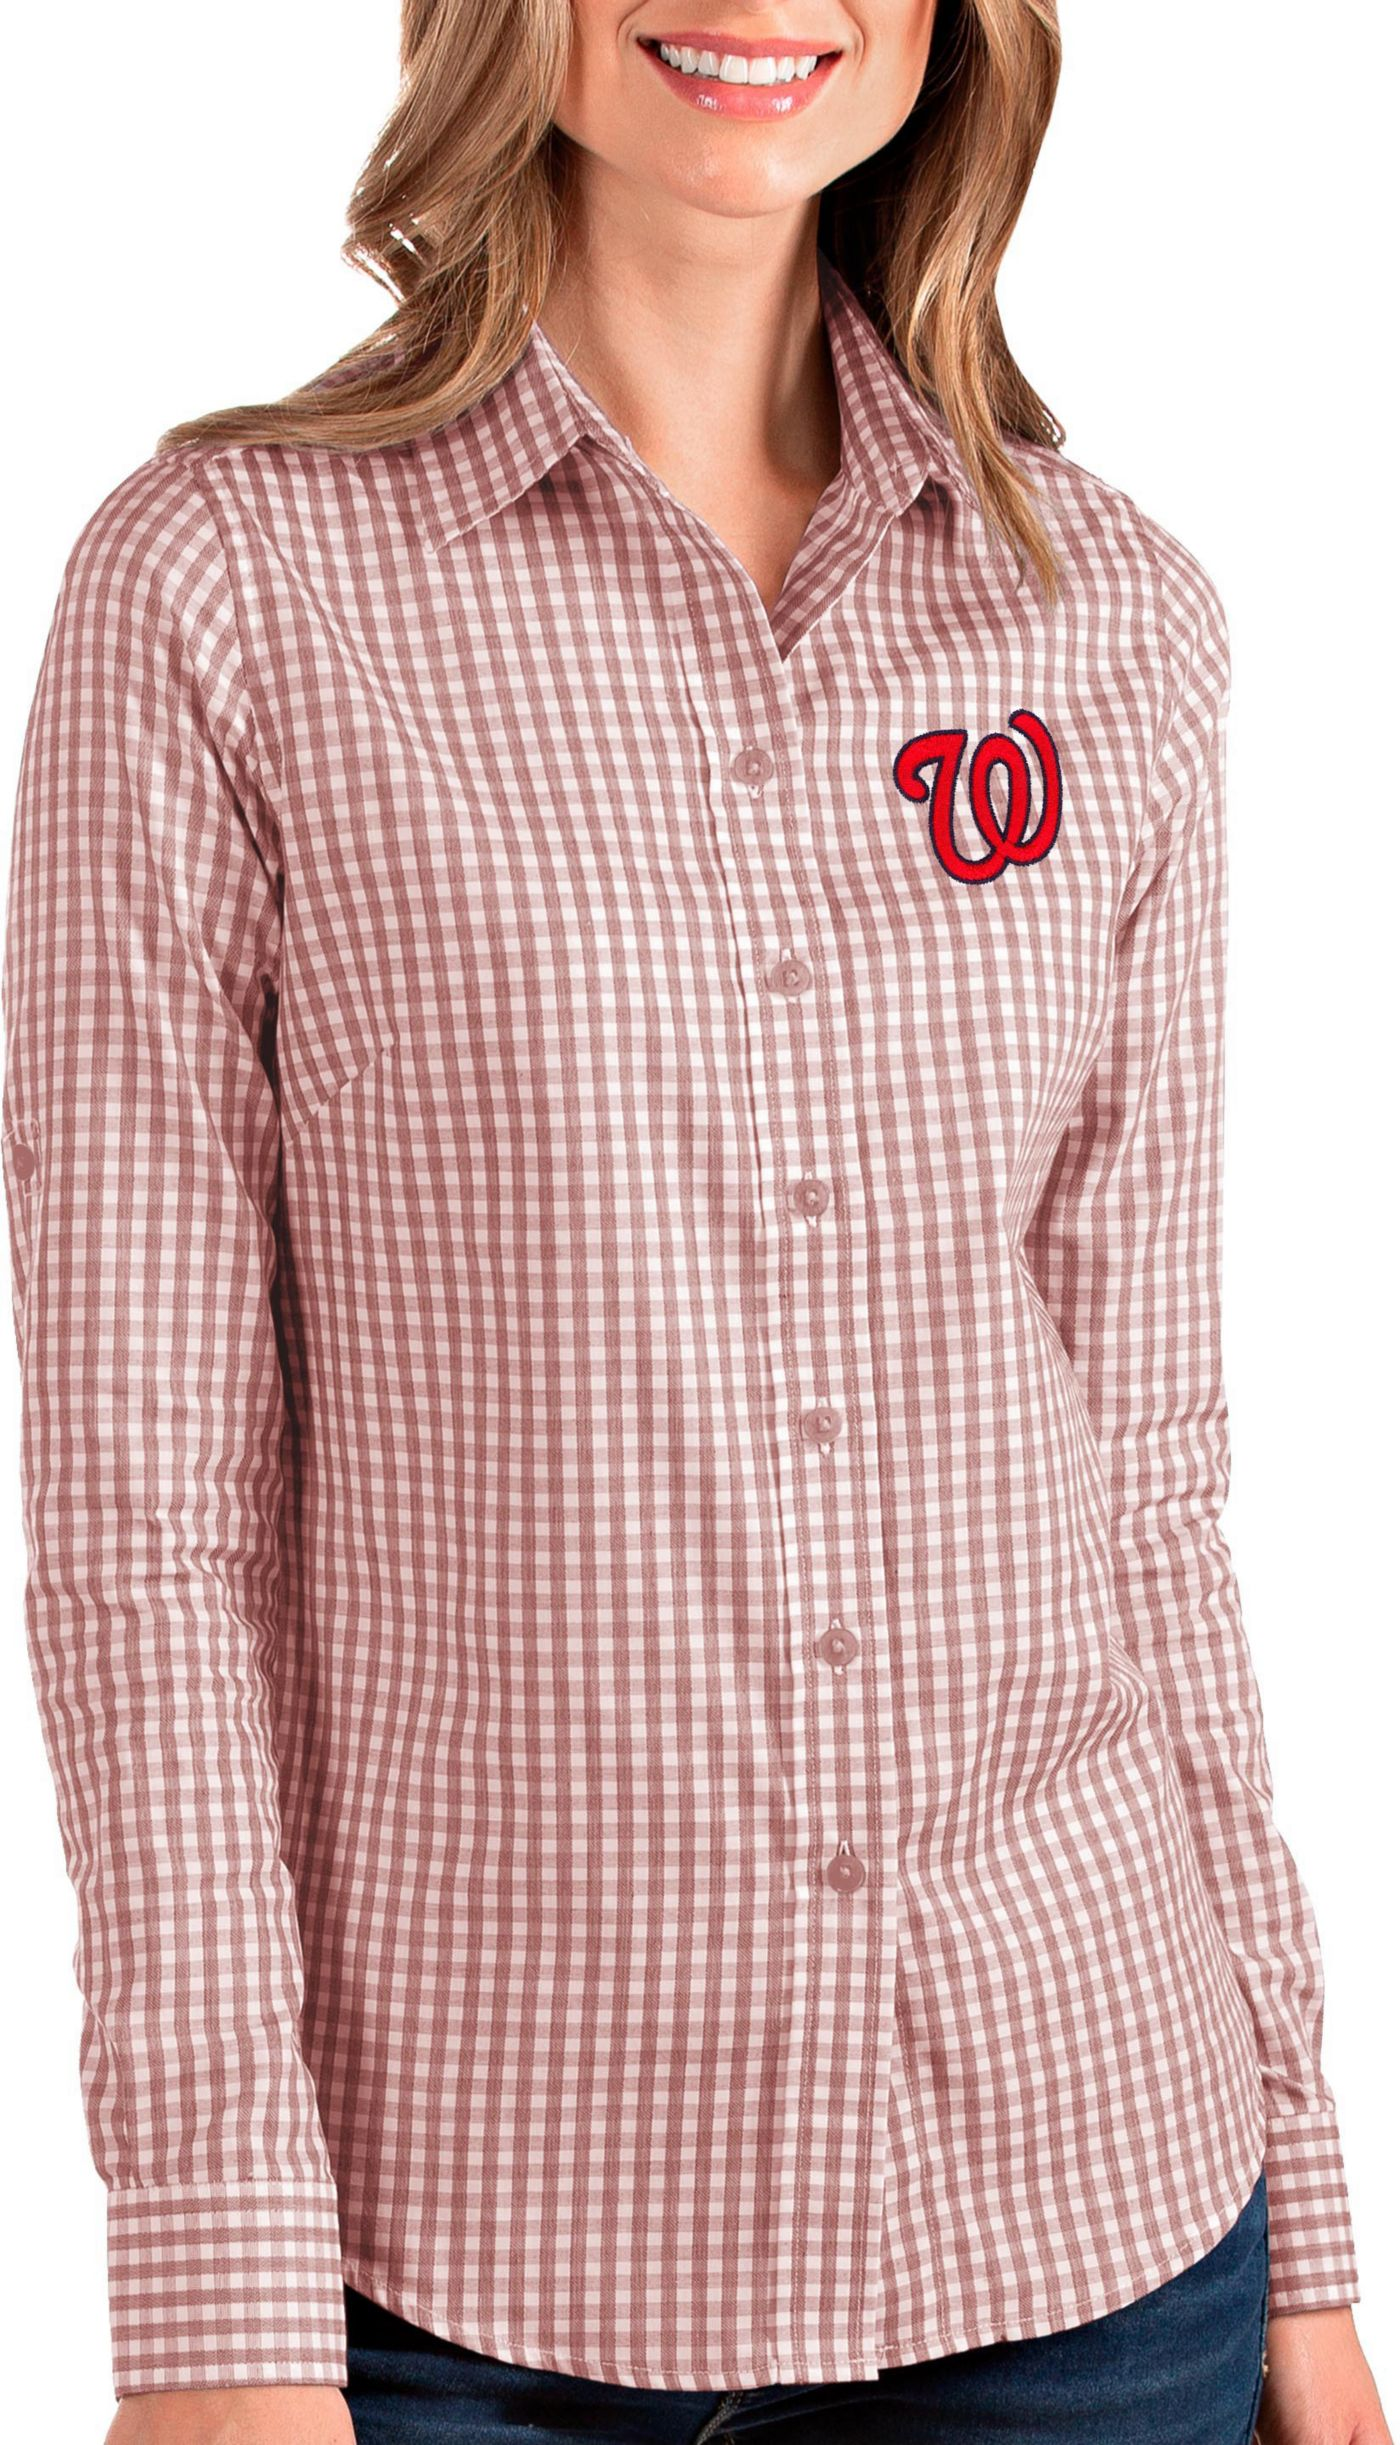 Antigua Women's Washington Nationals Structure Button-Up Red Long Sleeve Shirt